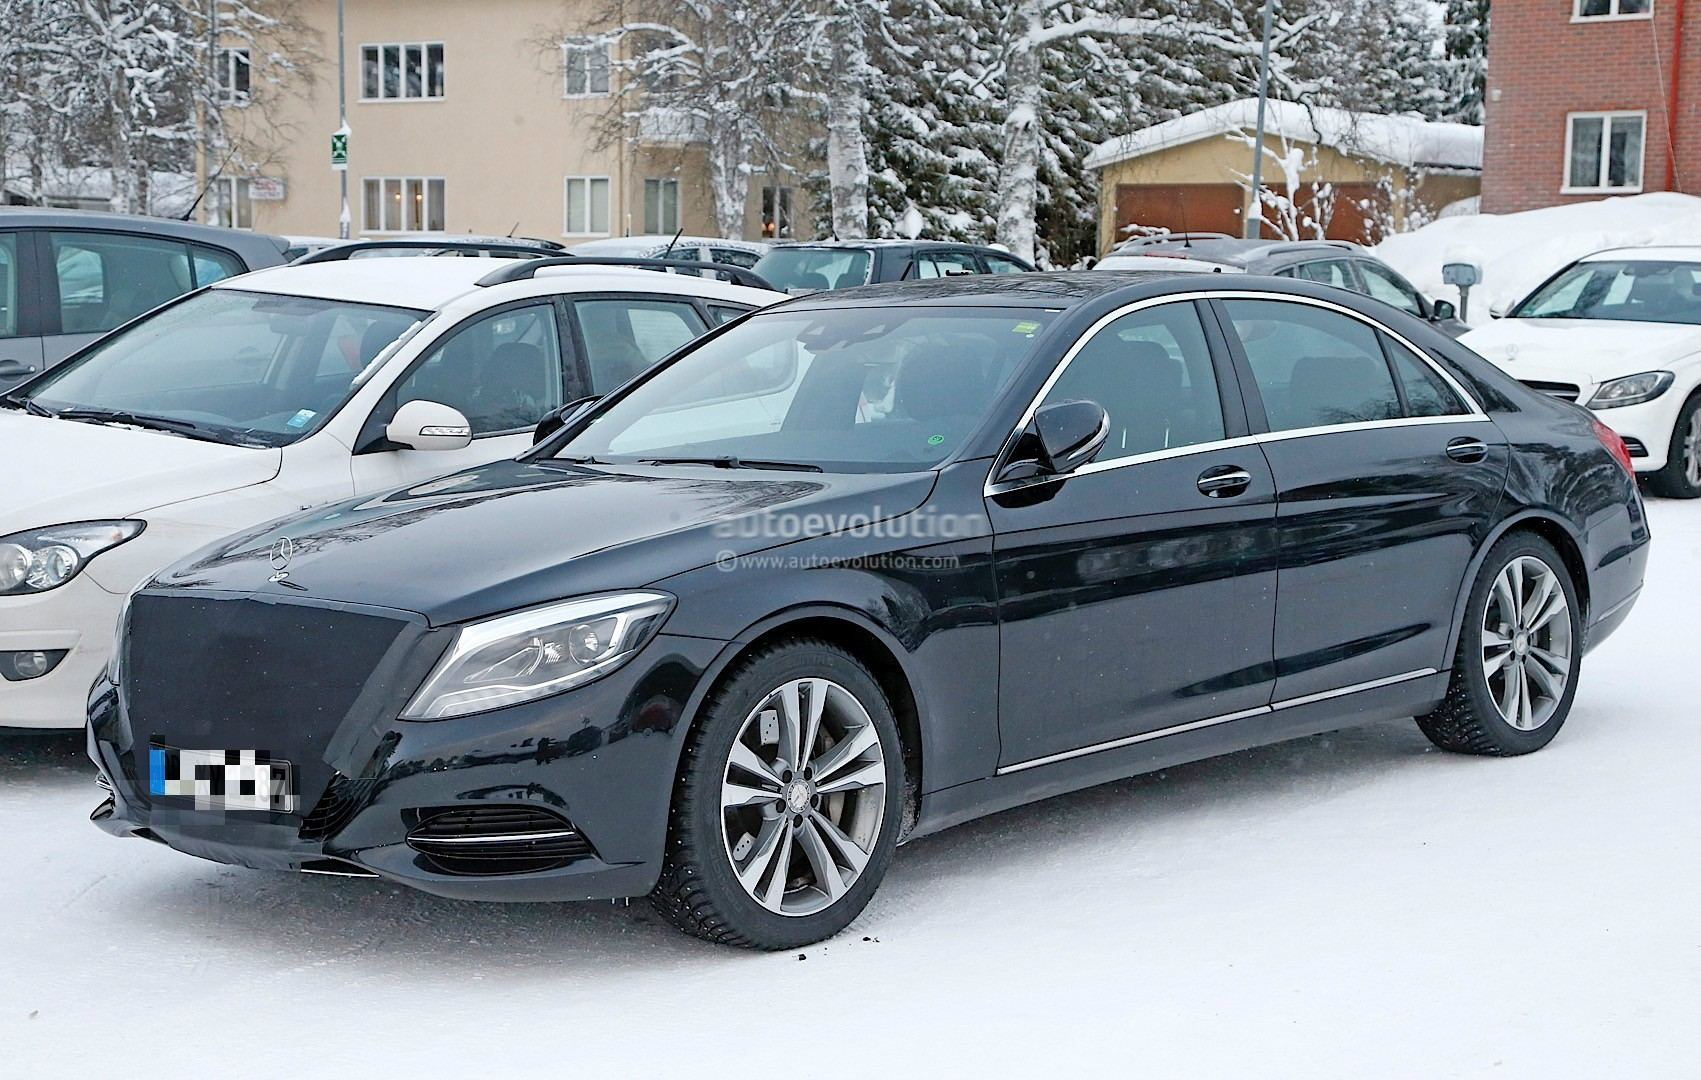 2018-mercedes-benz-s-class-facelift-shows-up-once-again_10